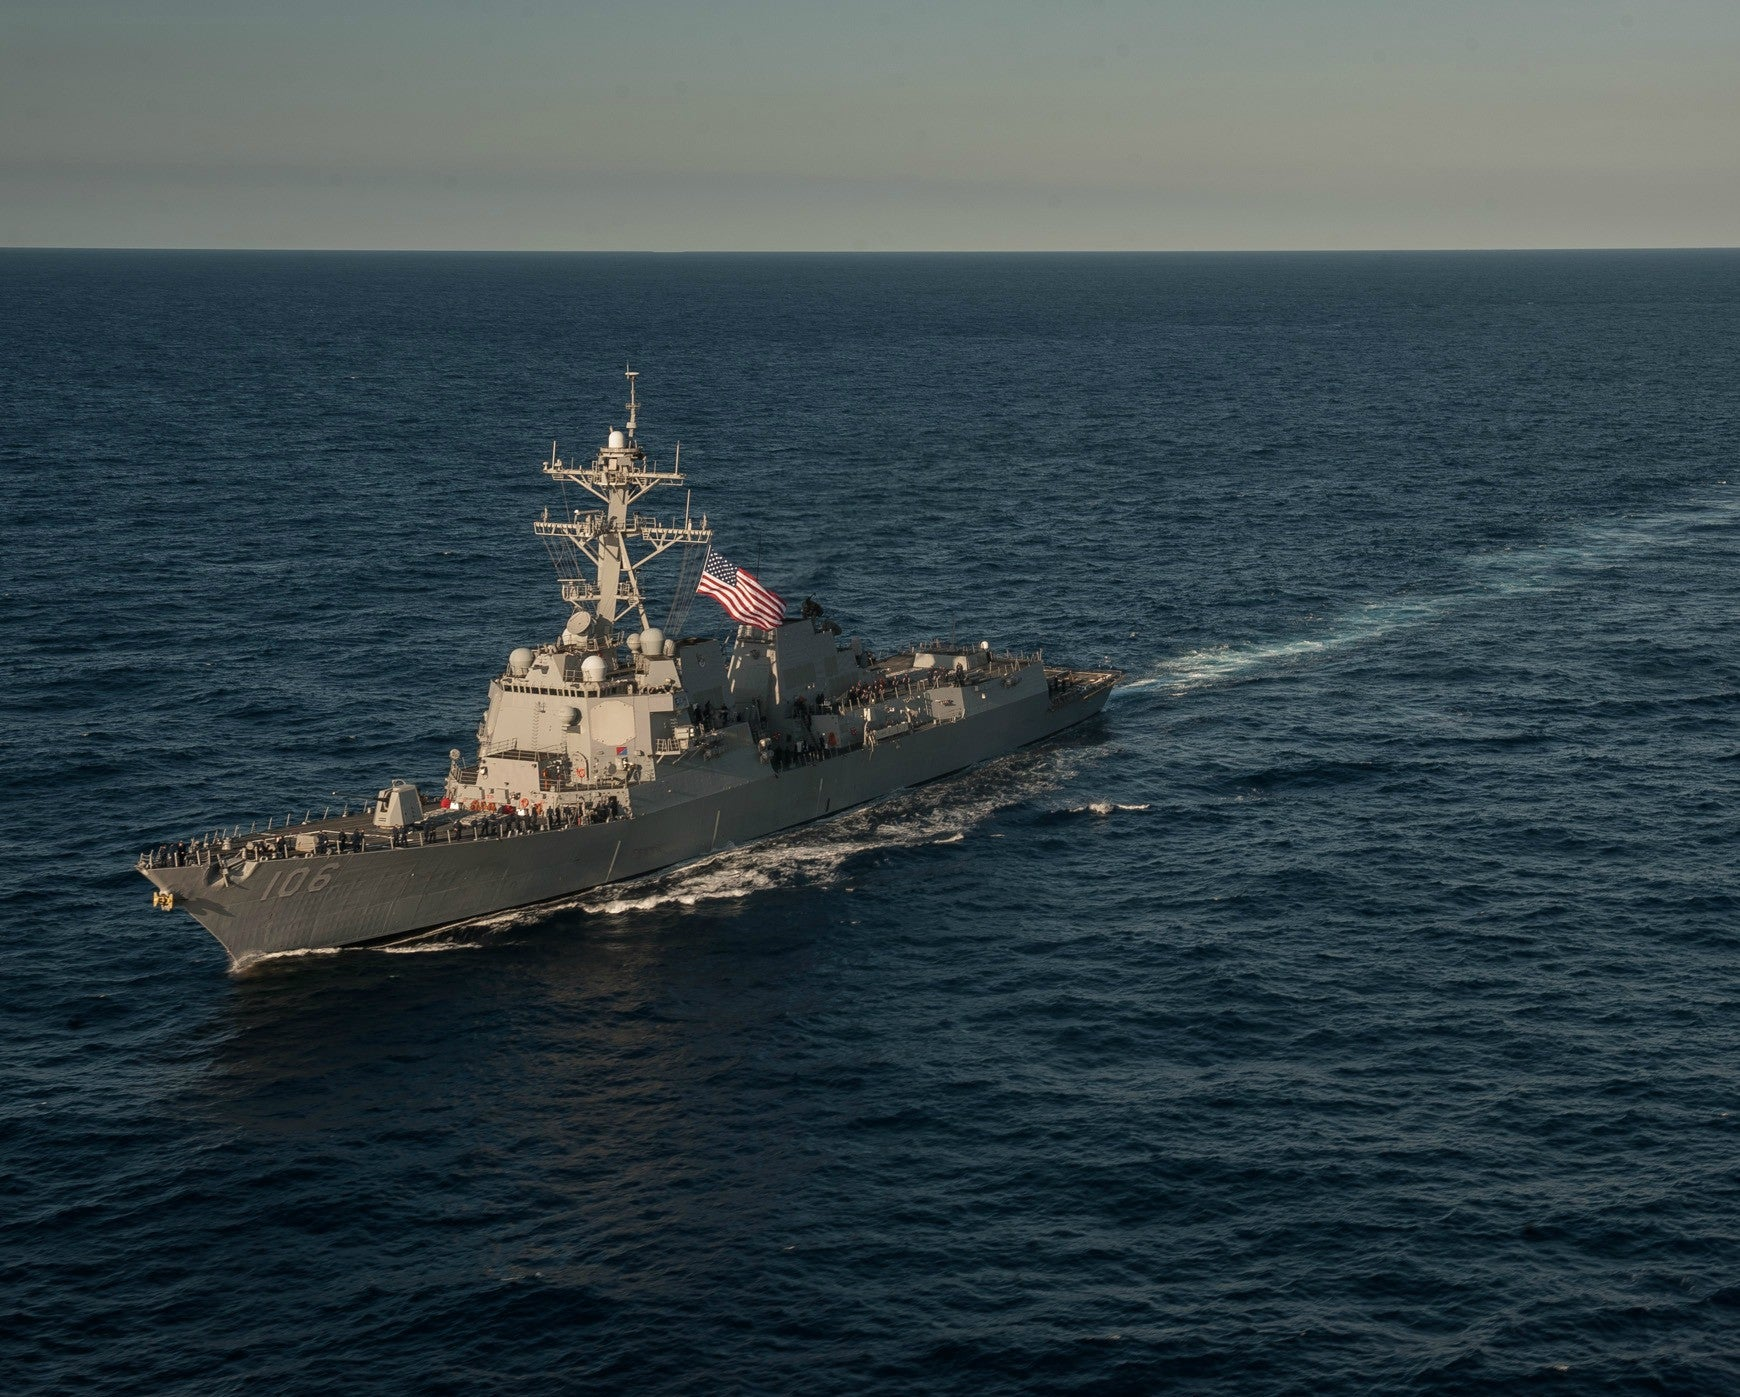 "USS Stockdale DDG-106 South China Sea February 11, 2013 - 8 x 10"" Photograph"